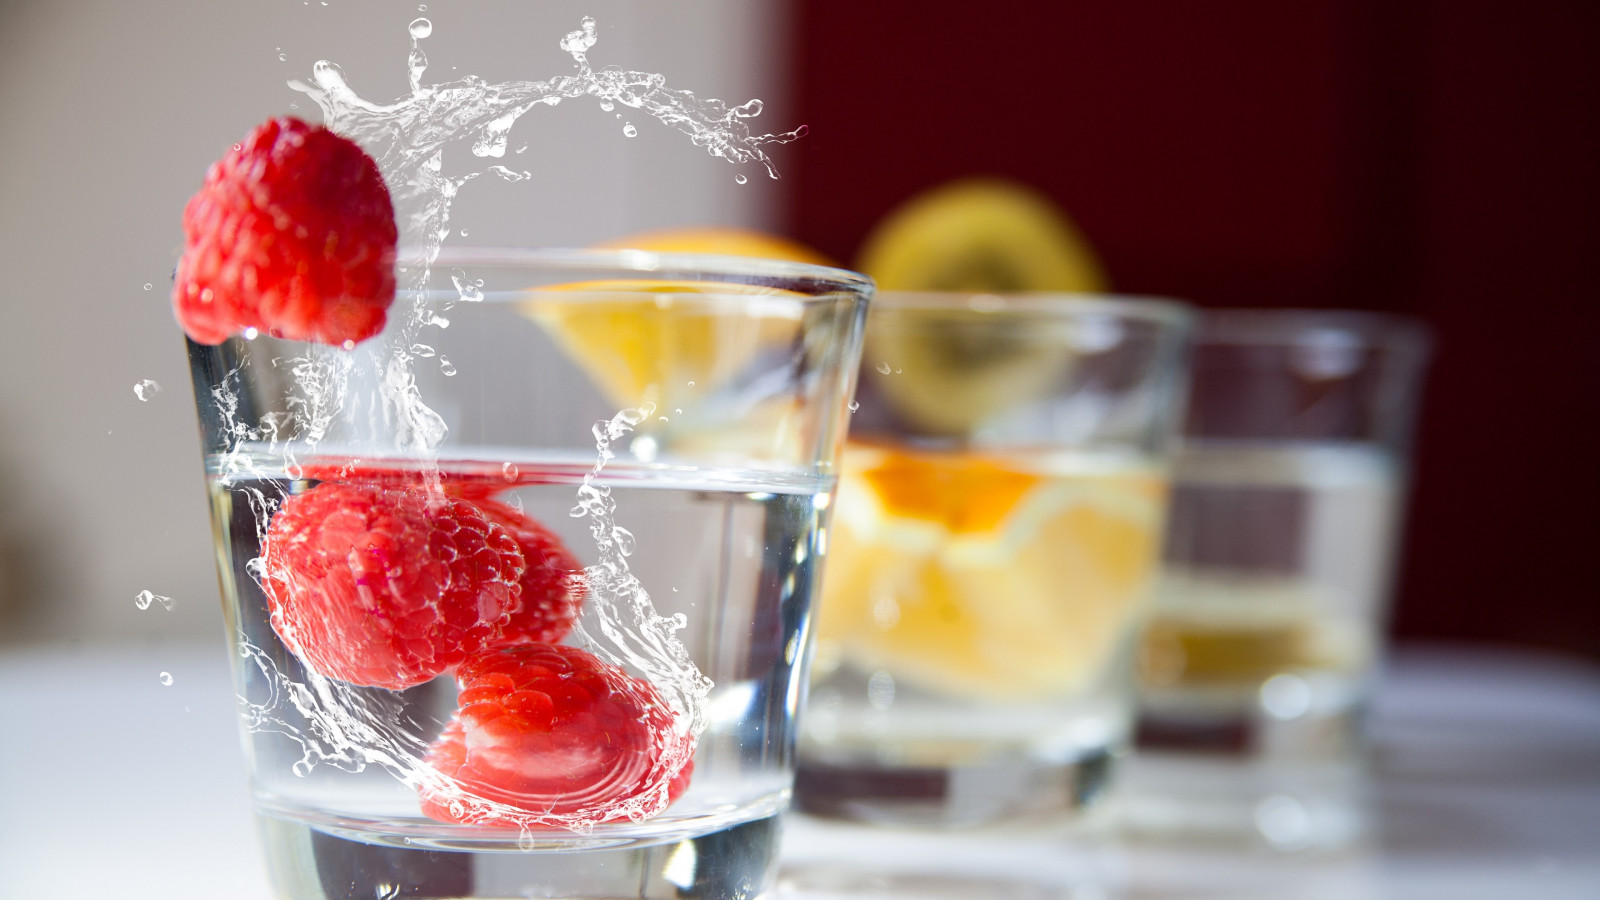 Raspberry and orange drinks wallpaper 1600x900